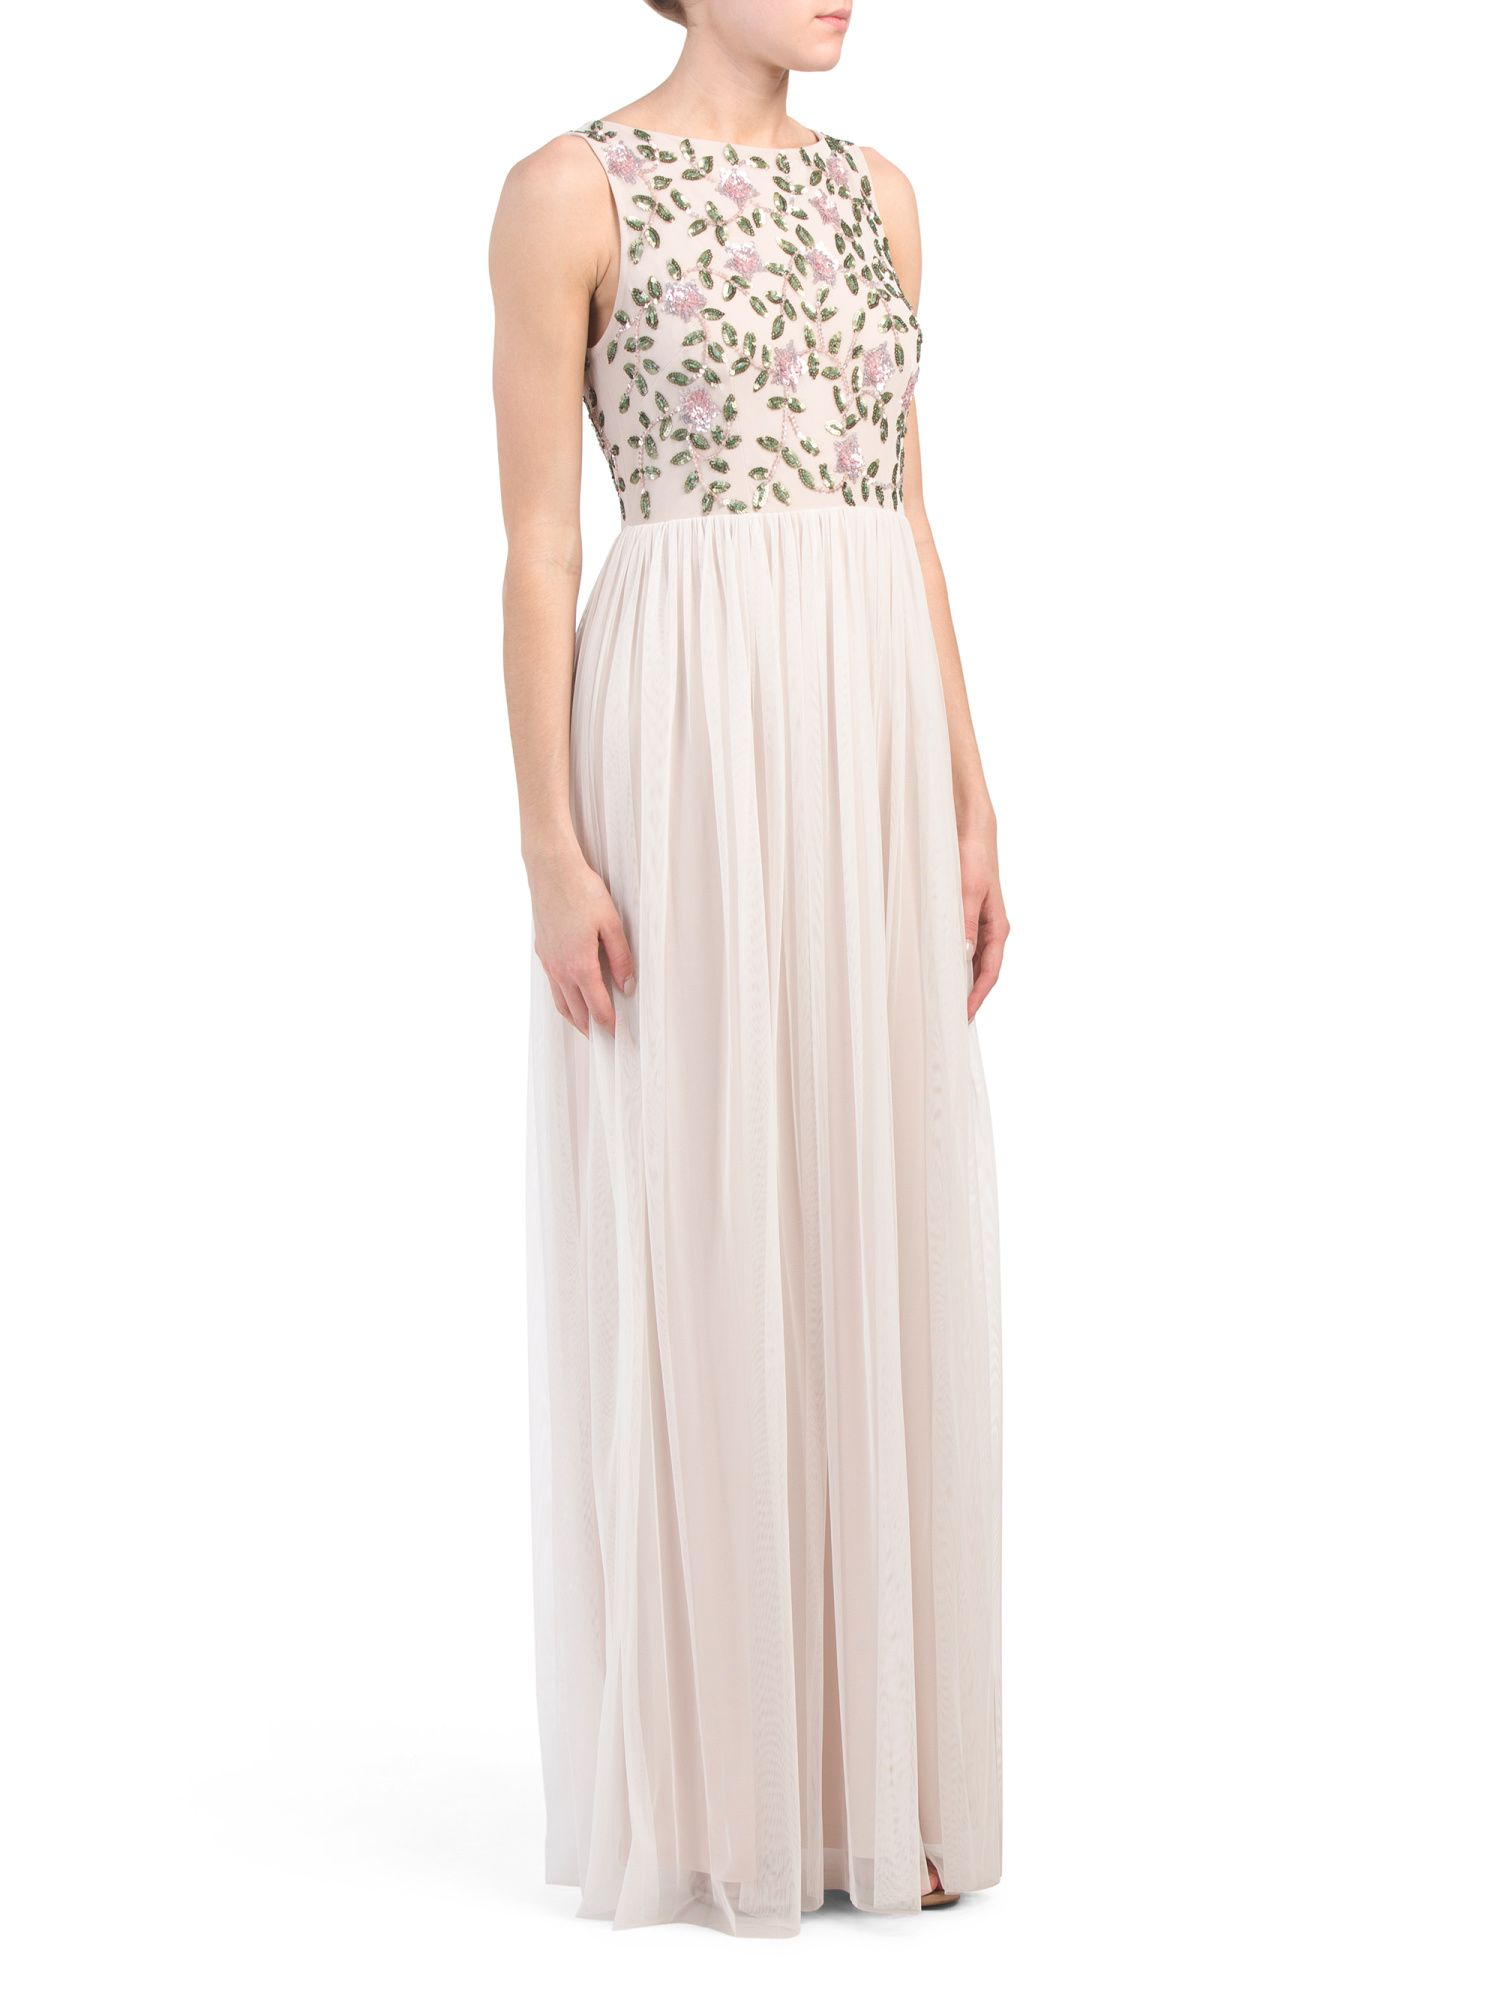 c974924d82947 Beaded Top Gown - Formal - T.J.Maxx   Wedding in 2019   Prom dresses ...